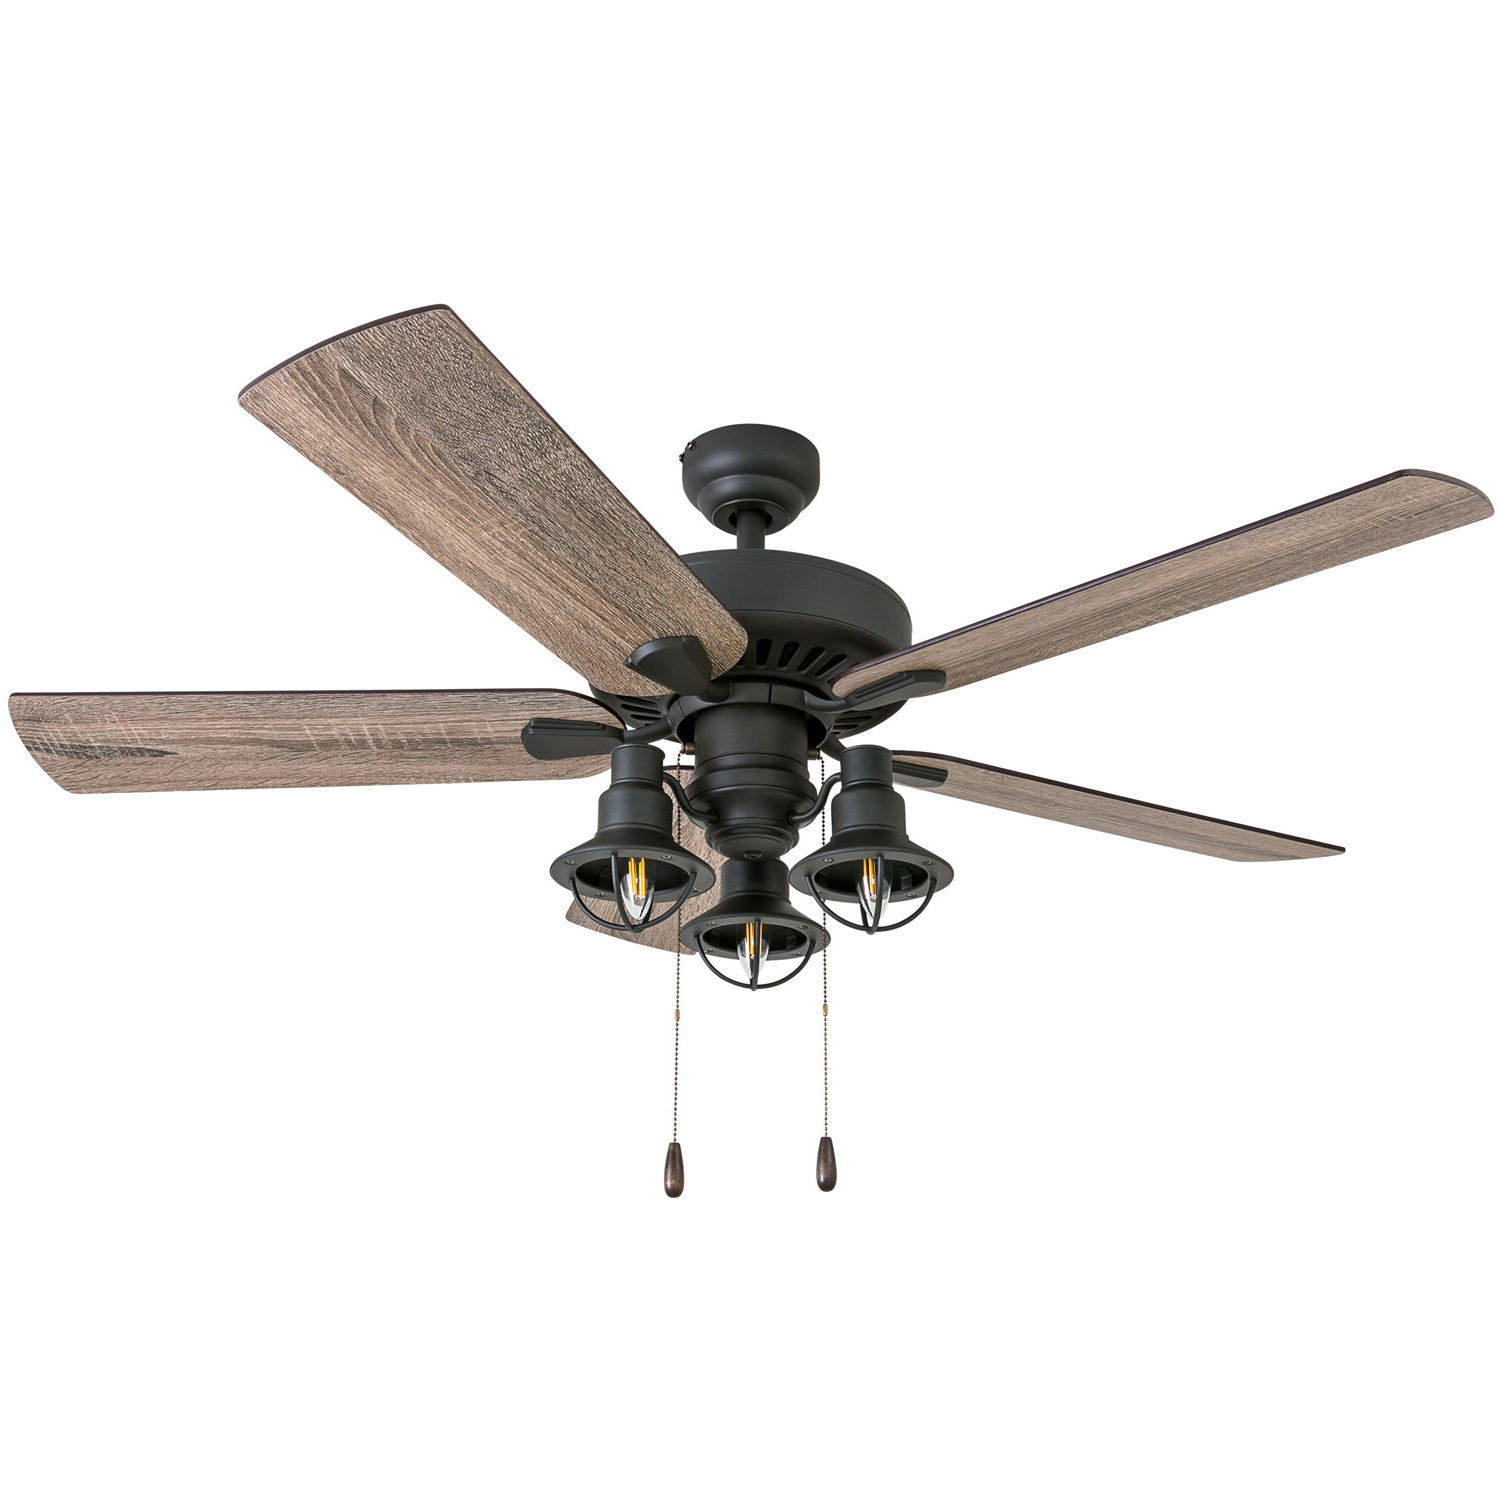 "Birch Lane™ Heritage 52"" Ravello 5 Blade Led Ceiling Fan, Light Kit Included Regarding Well Known Beltran 5 Blade Ceiling Fans (View 5 of 20)"